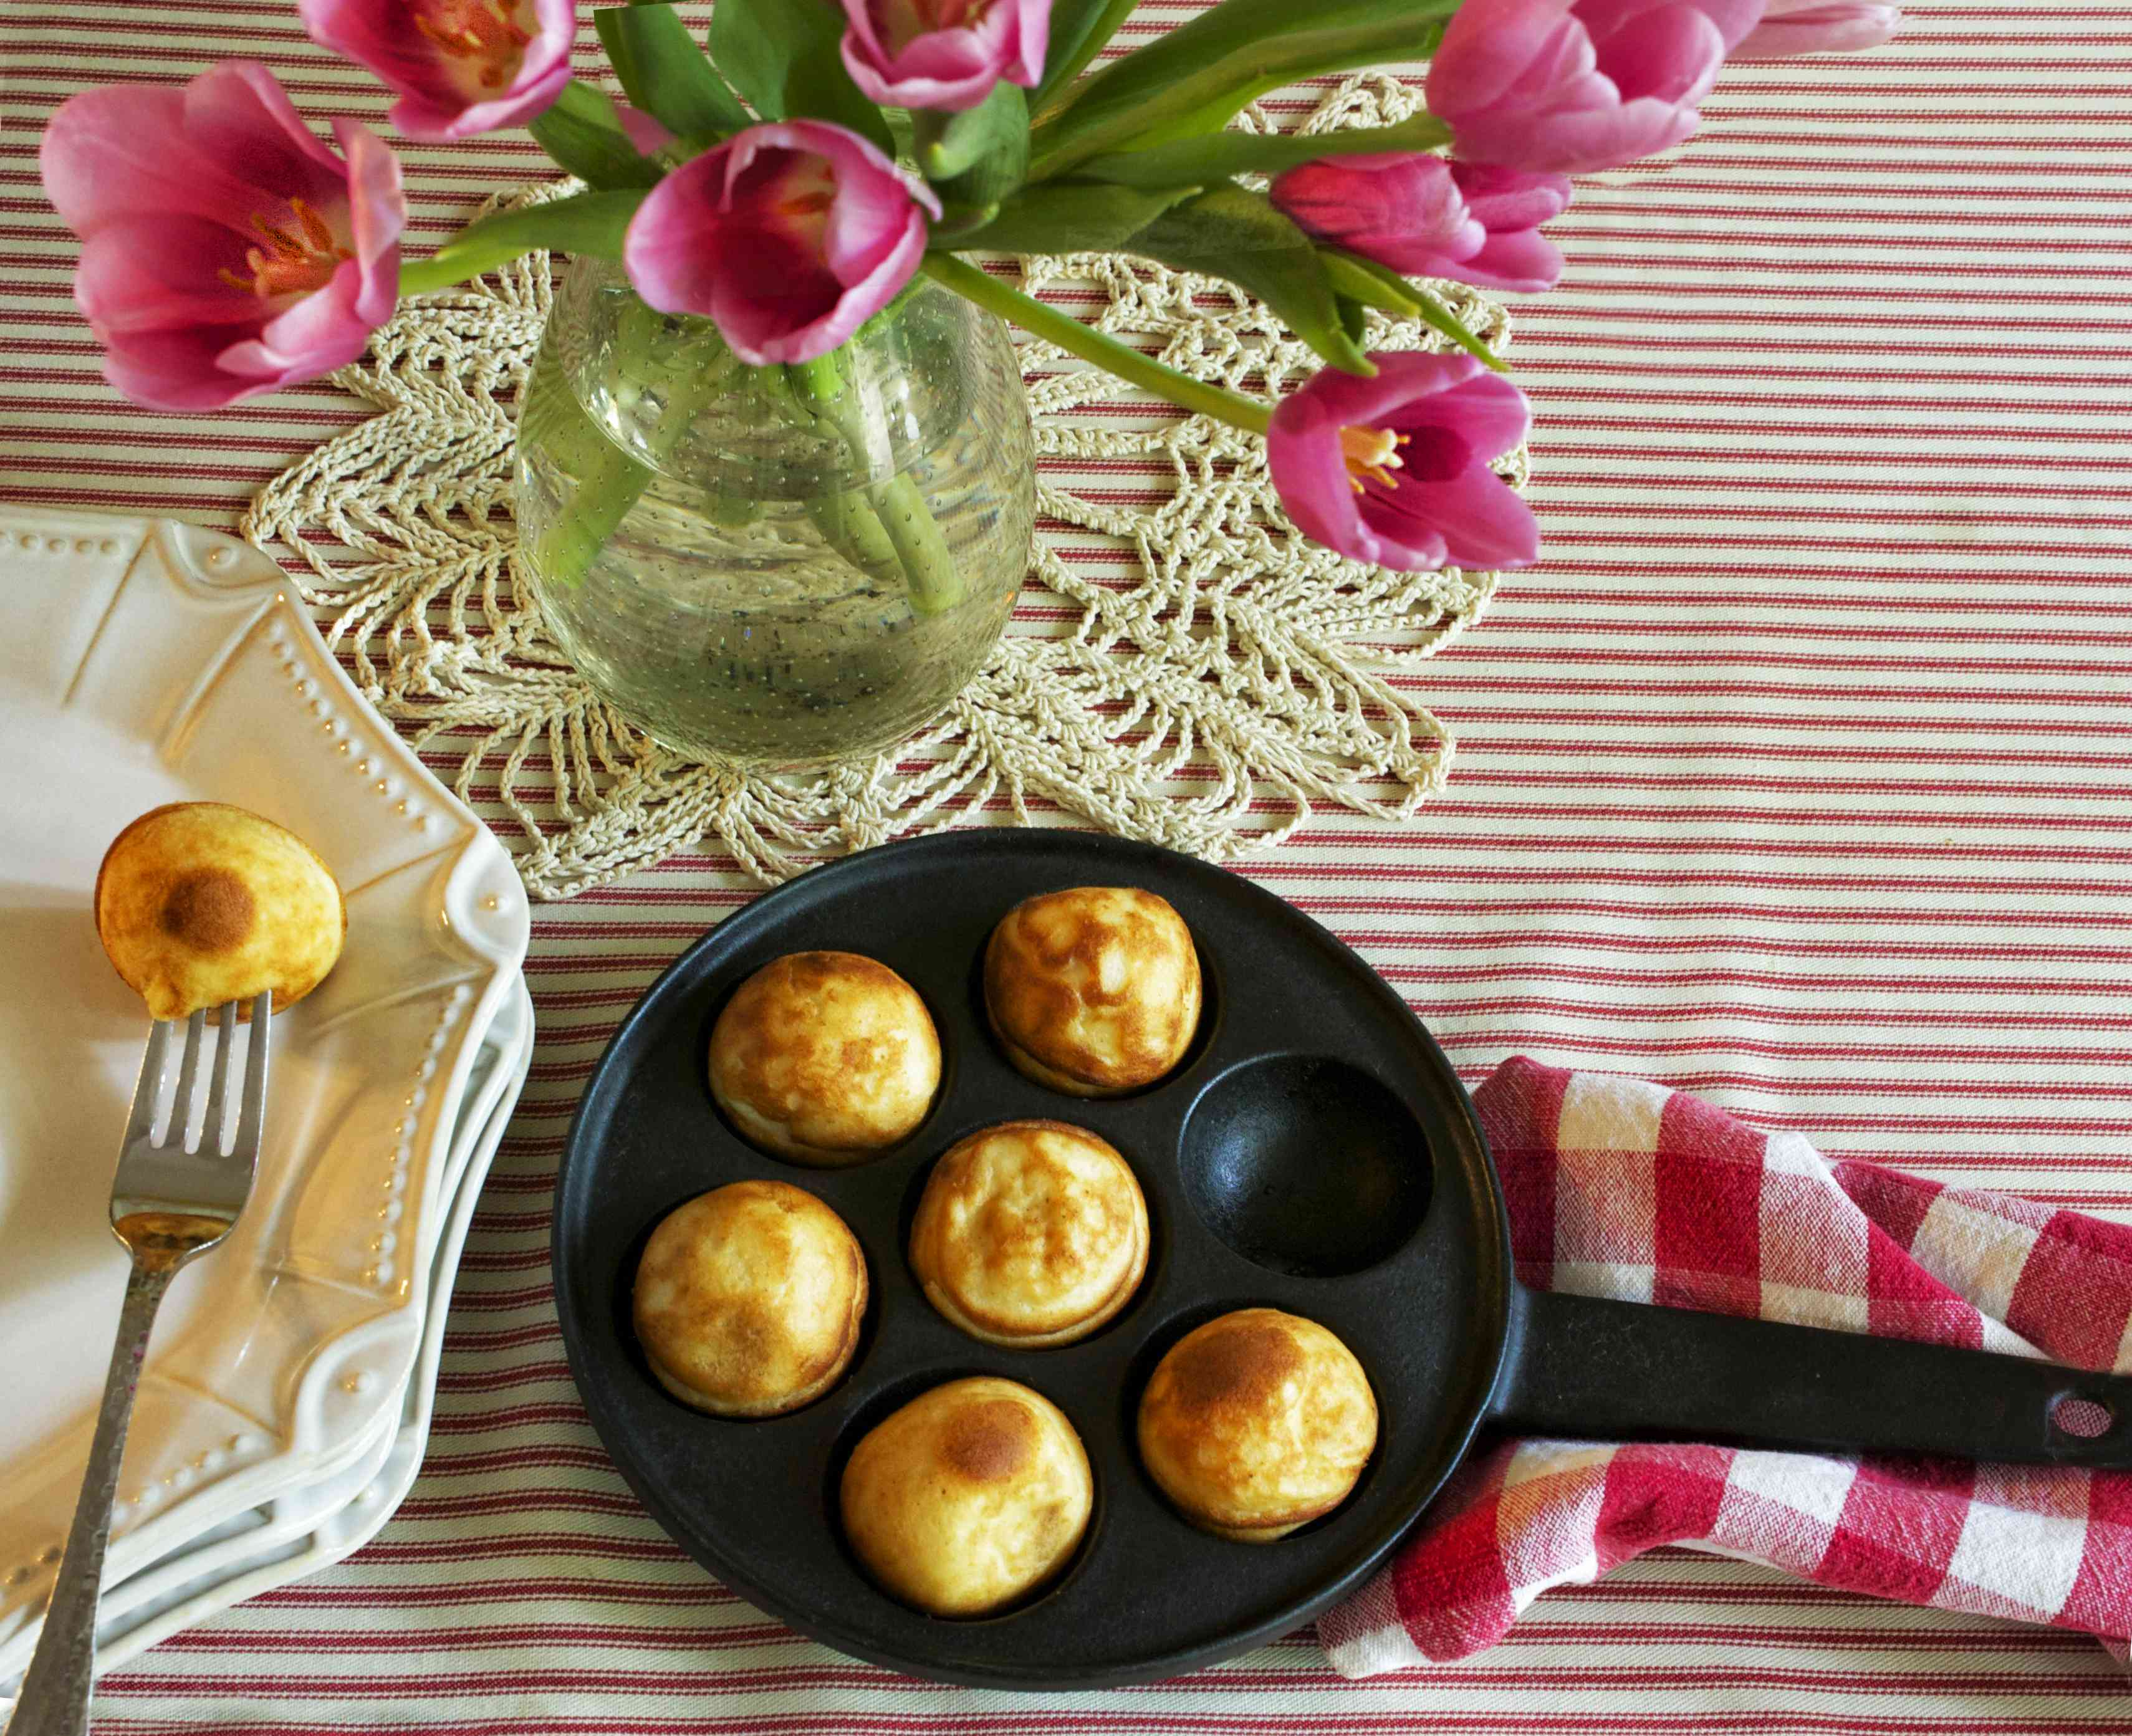 Round pancake balls in a special pan on a red and white table cloth